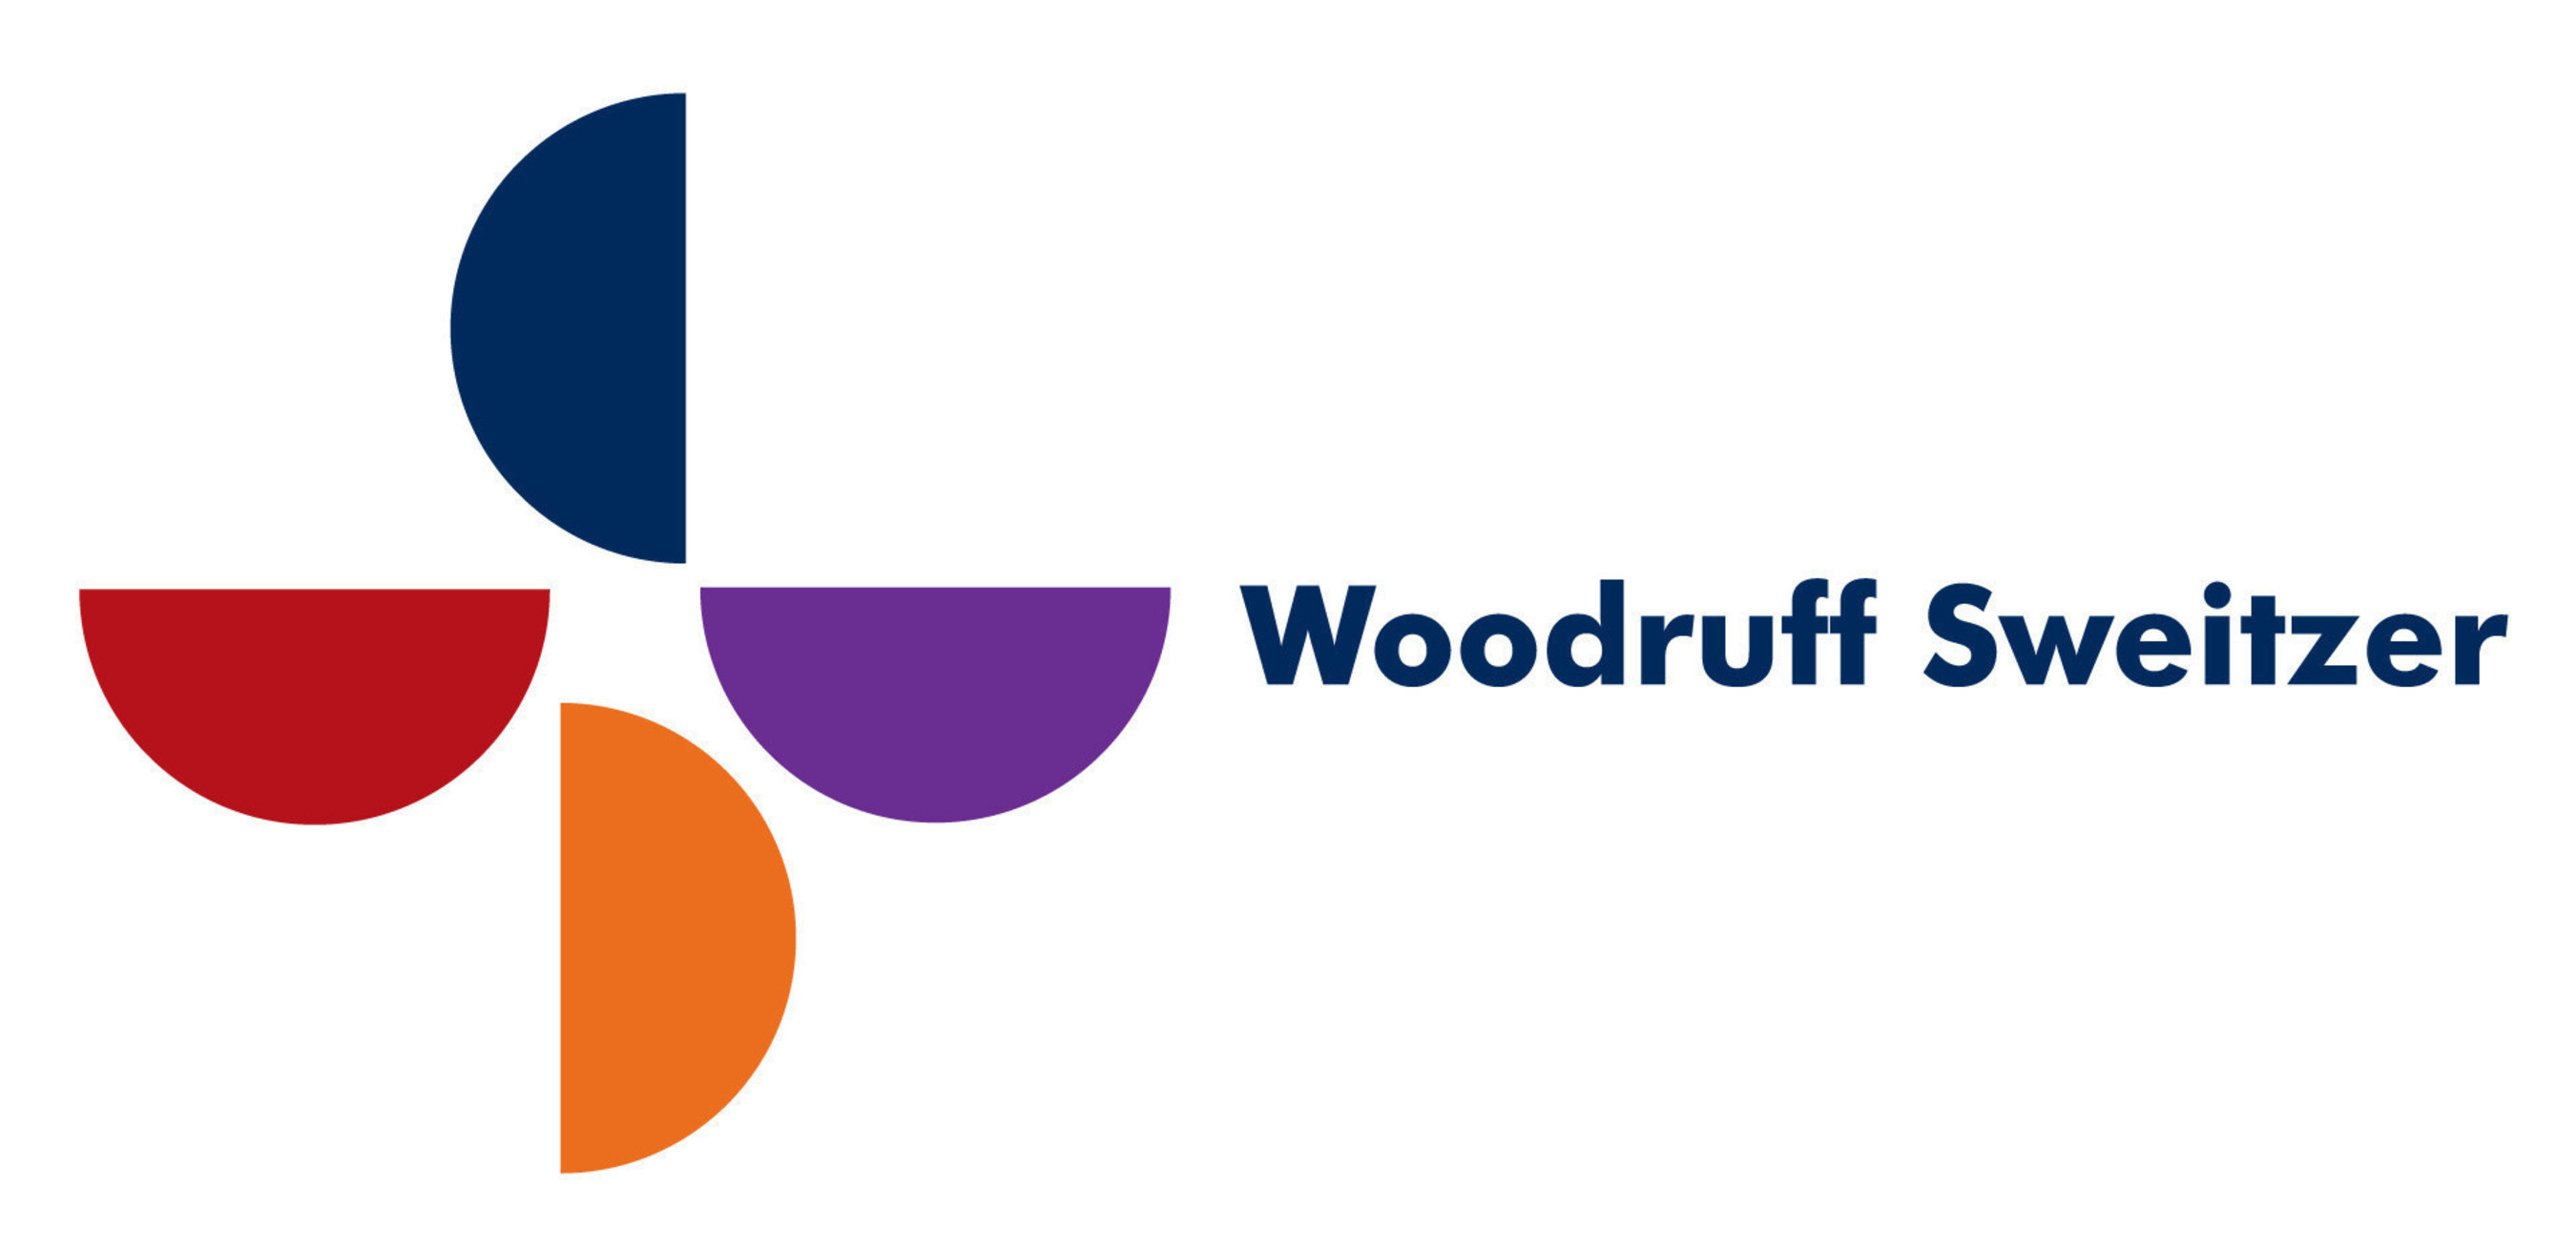 Woodruff Sweitzer has 140 employees with offices in Missouri, Minnesota and Alberta, Canada.